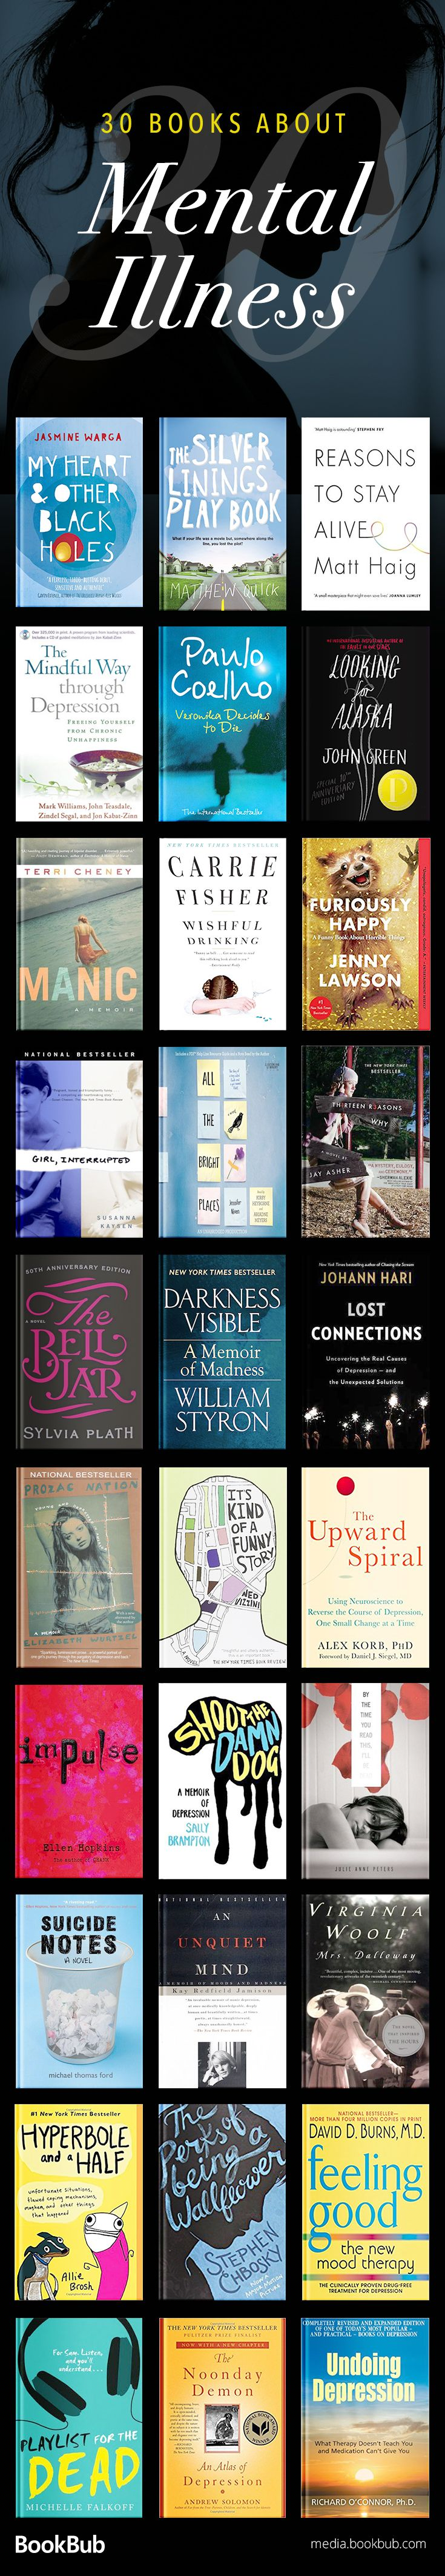 30 Powerful Books About Depression